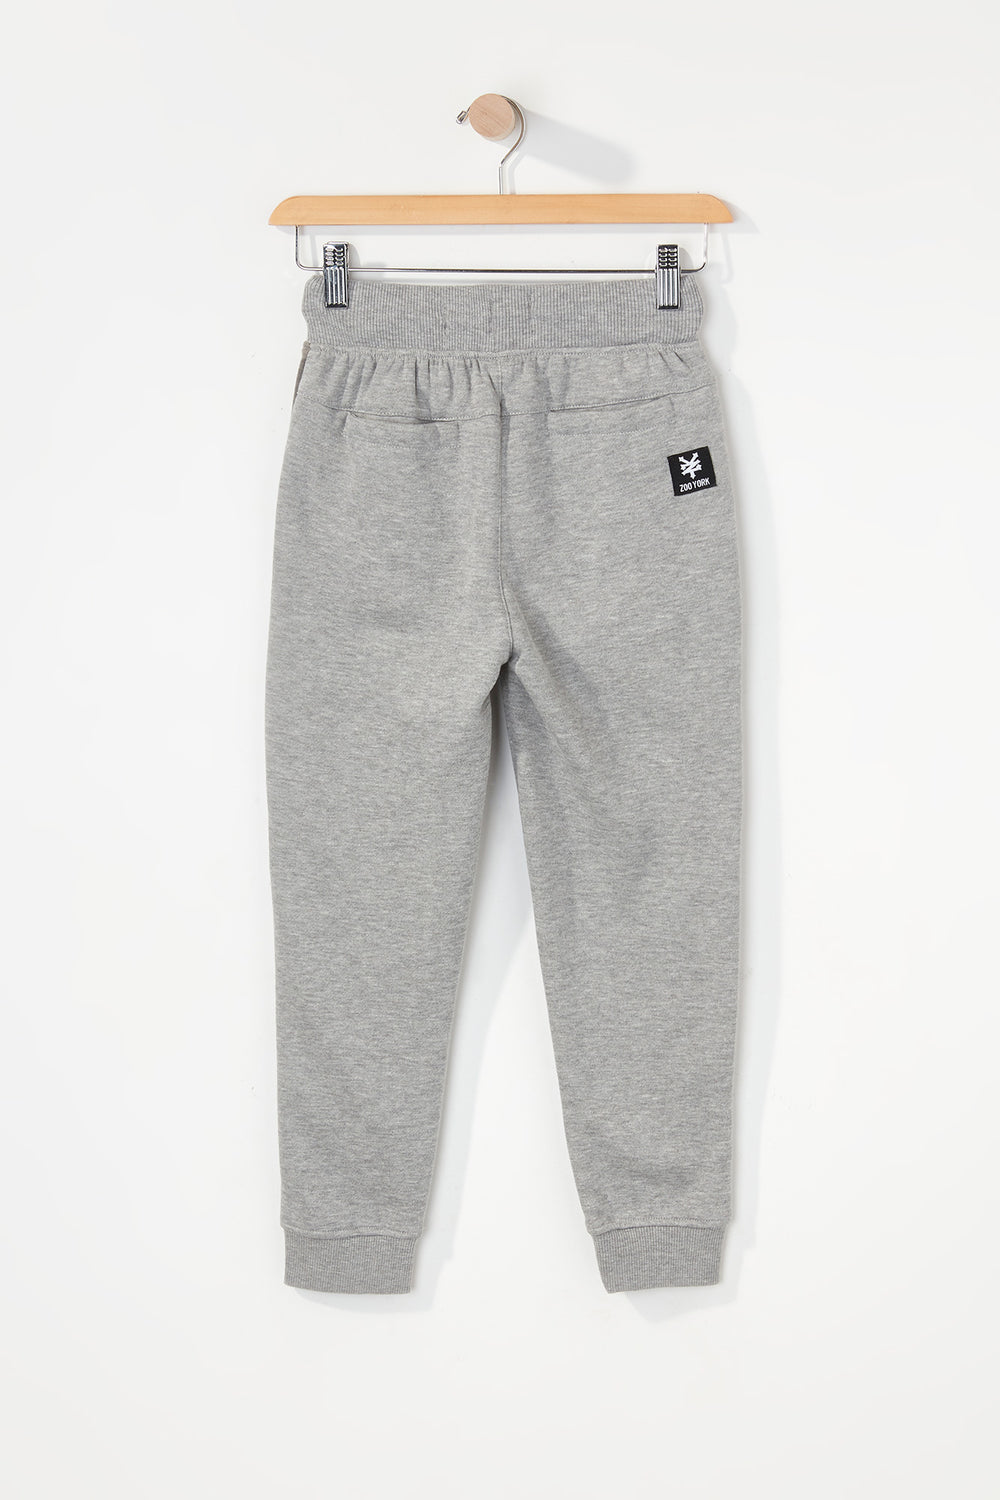 Zoo York Boys Camo Colour Block Jogger Heather Grey